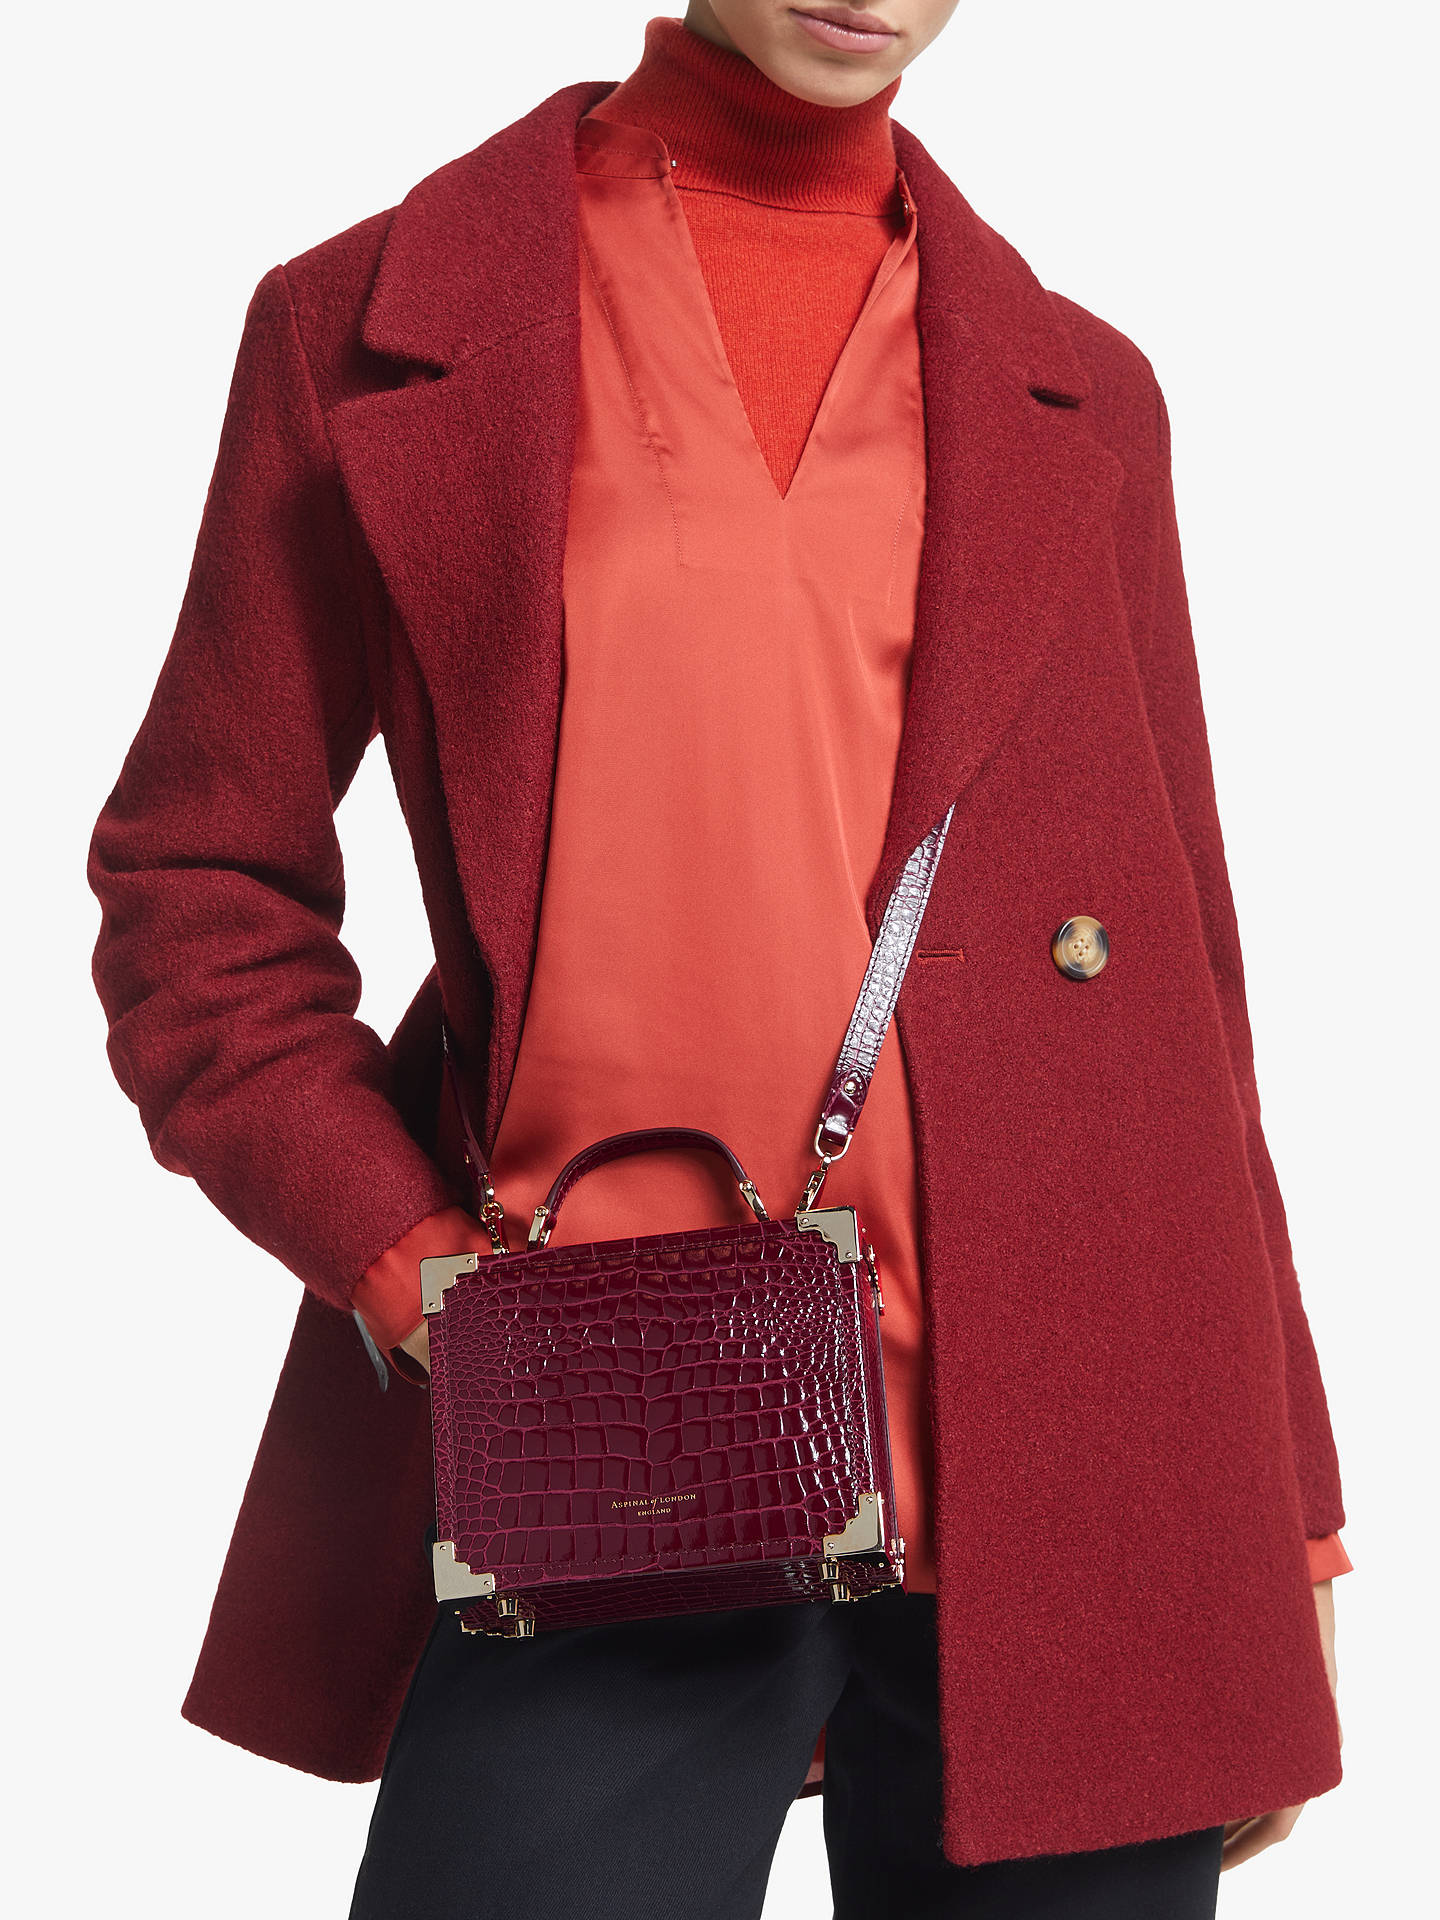 Aspinal of London Leather Trunk Clutch Grab Bag at John Lewis ...